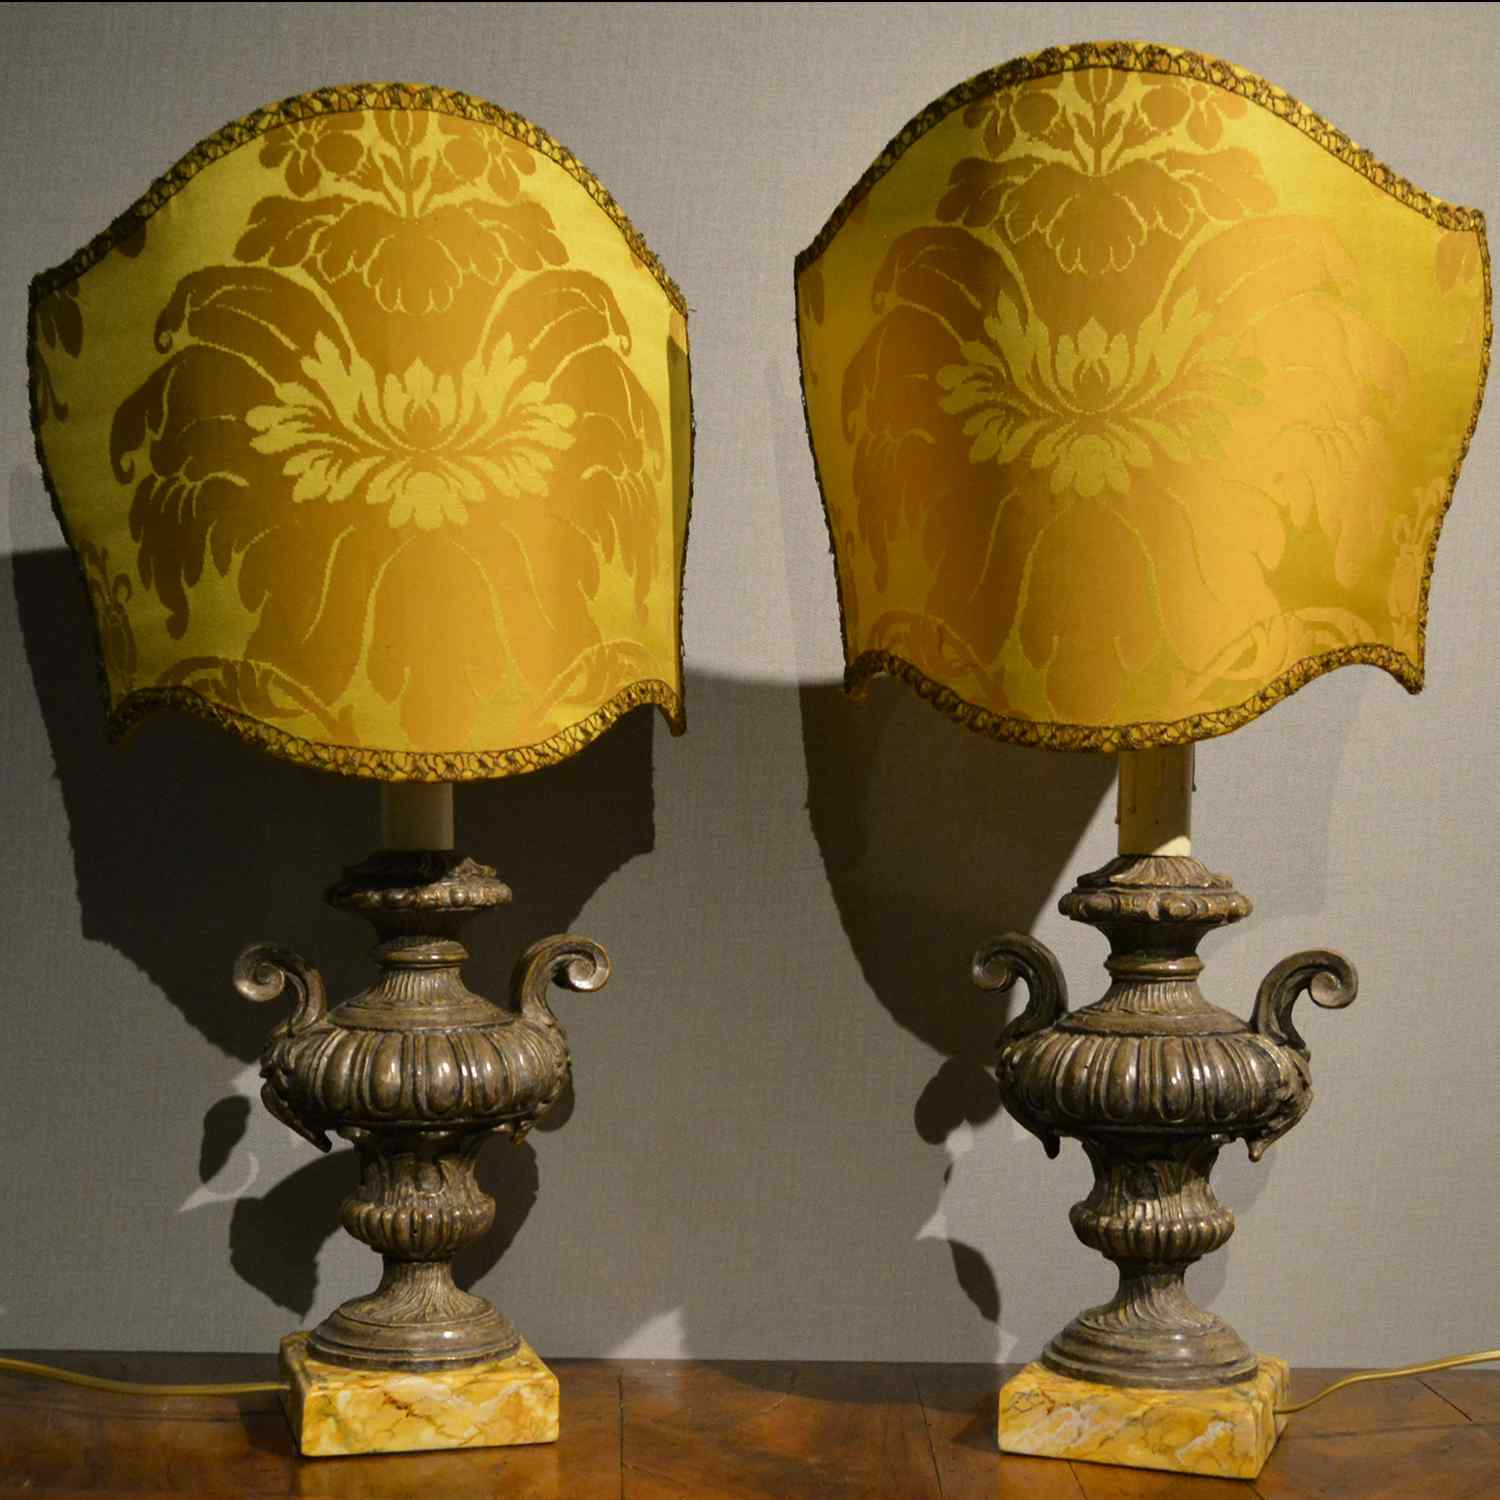 Pair of antique table lamps